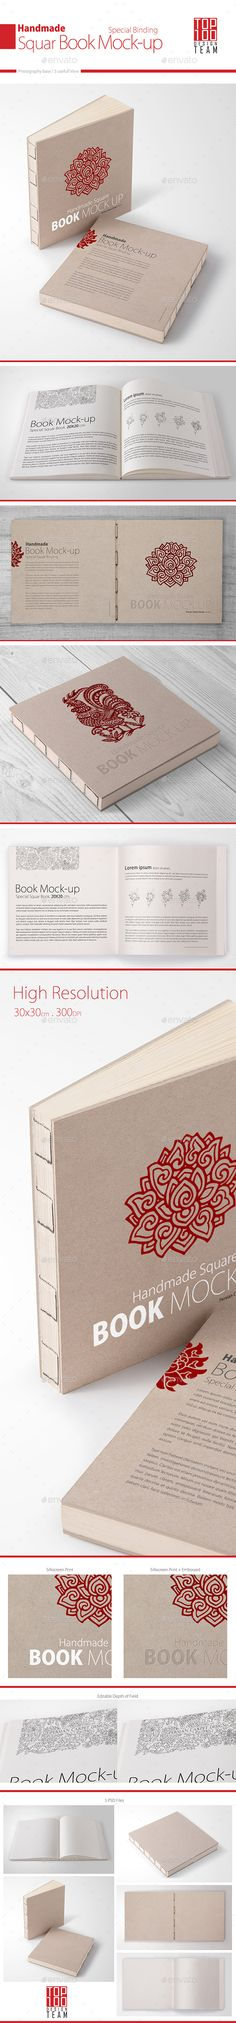 Handmade Square Book Mock-up by Top100team Create a realistic display for your special book design in few seconds. FEATURES : 5 Square handmade book presentationsPhotoshop